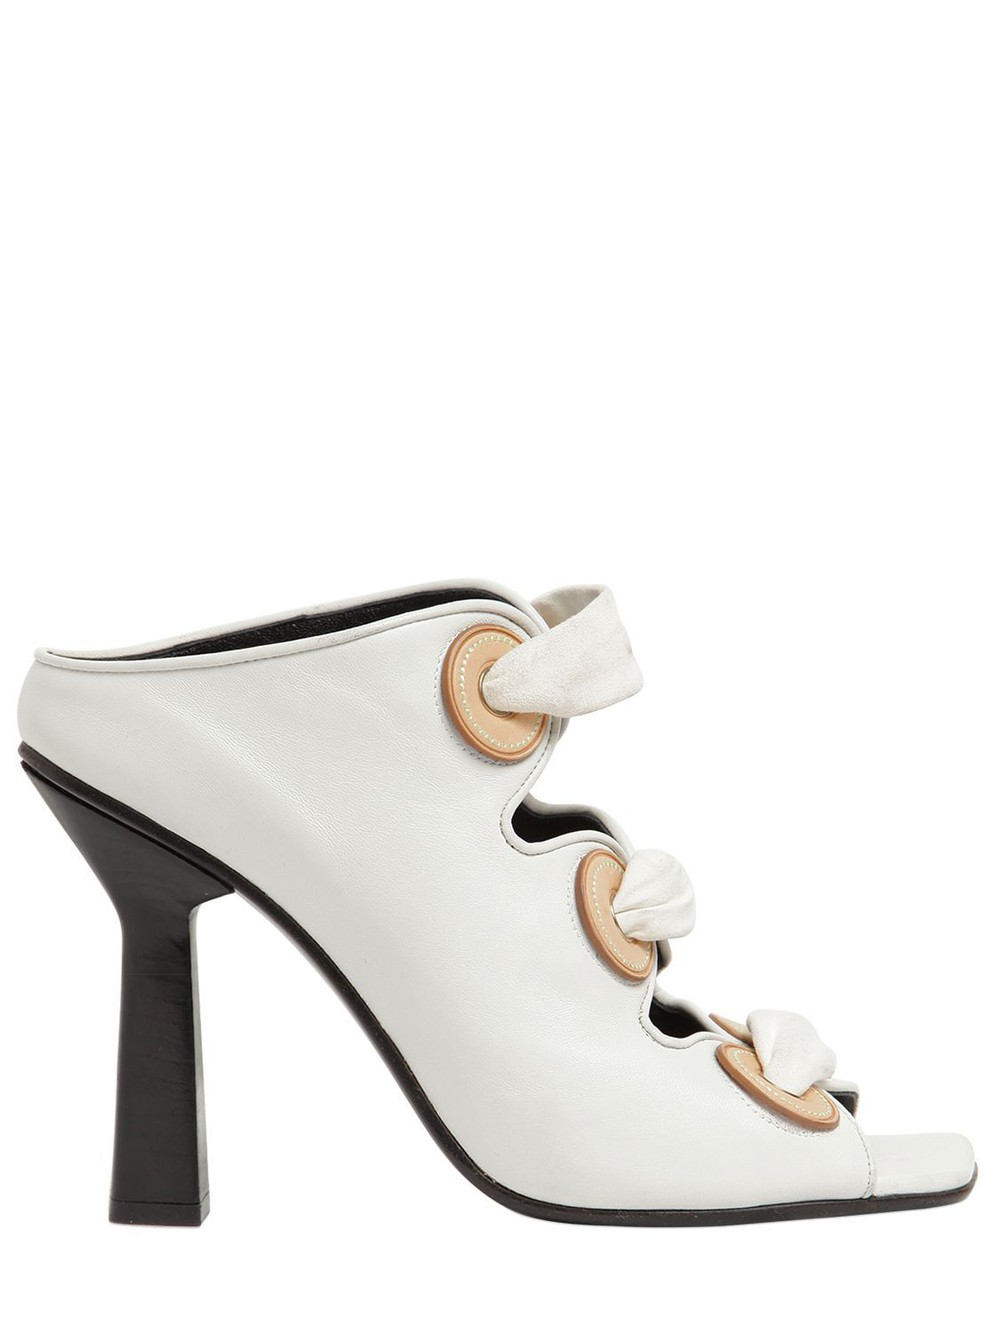 J.W.ANDERSON 100mm Leather Mule Sandal W/ Eyelets in white